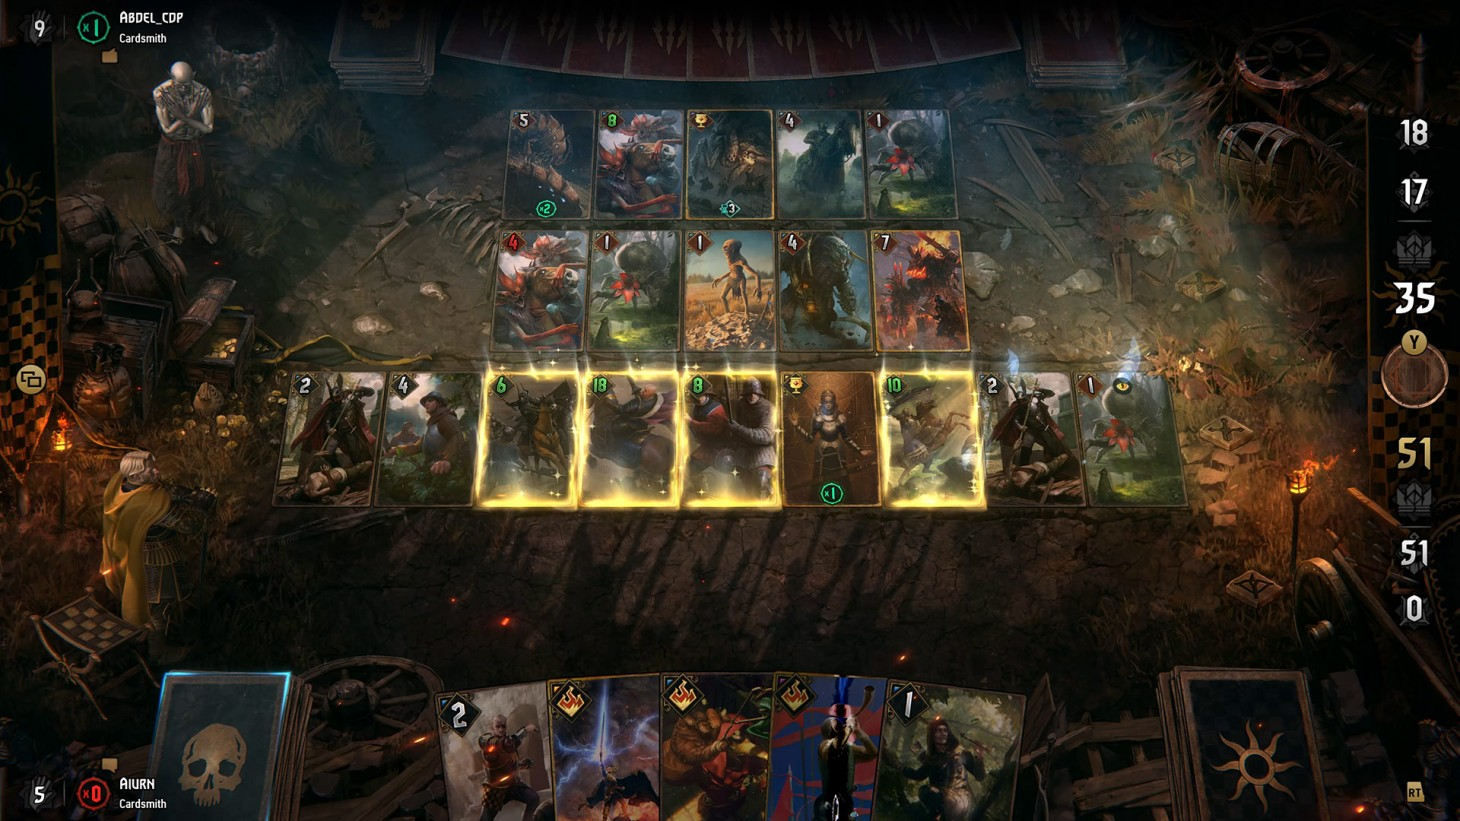 Gwent iOS Review: The Witcher Card Game Overcomes